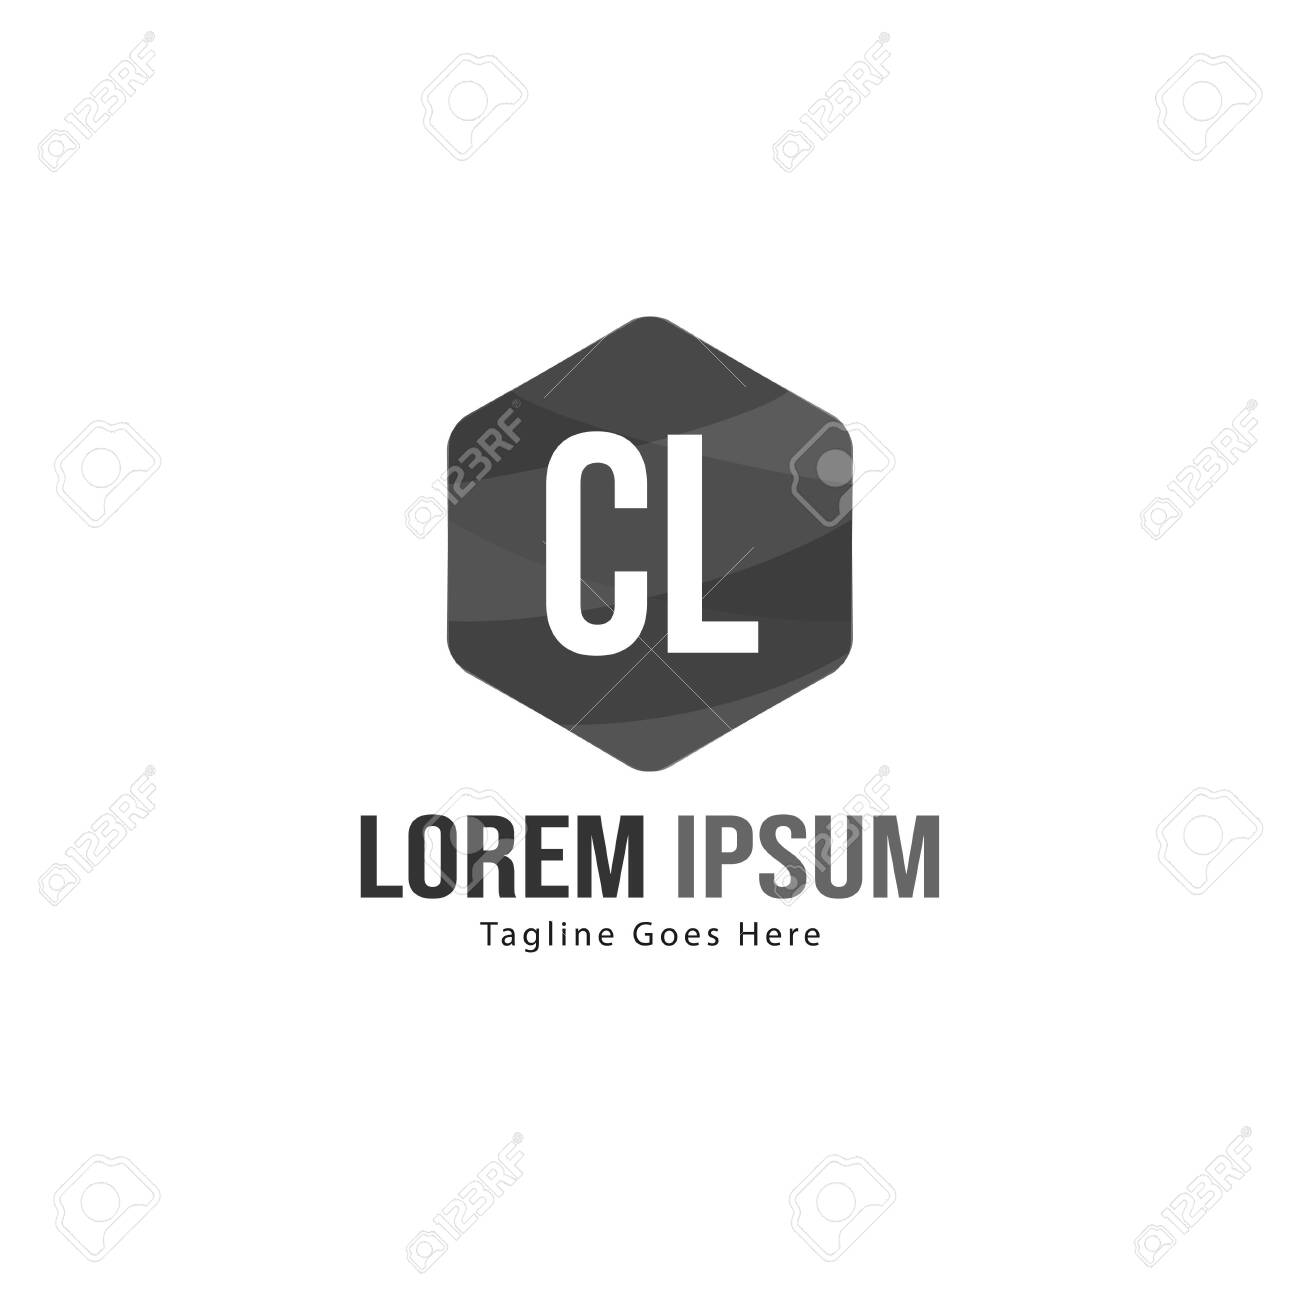 Initial CL logo template with modern frame. Minimalist CL letter logo vector illustration - 129275880